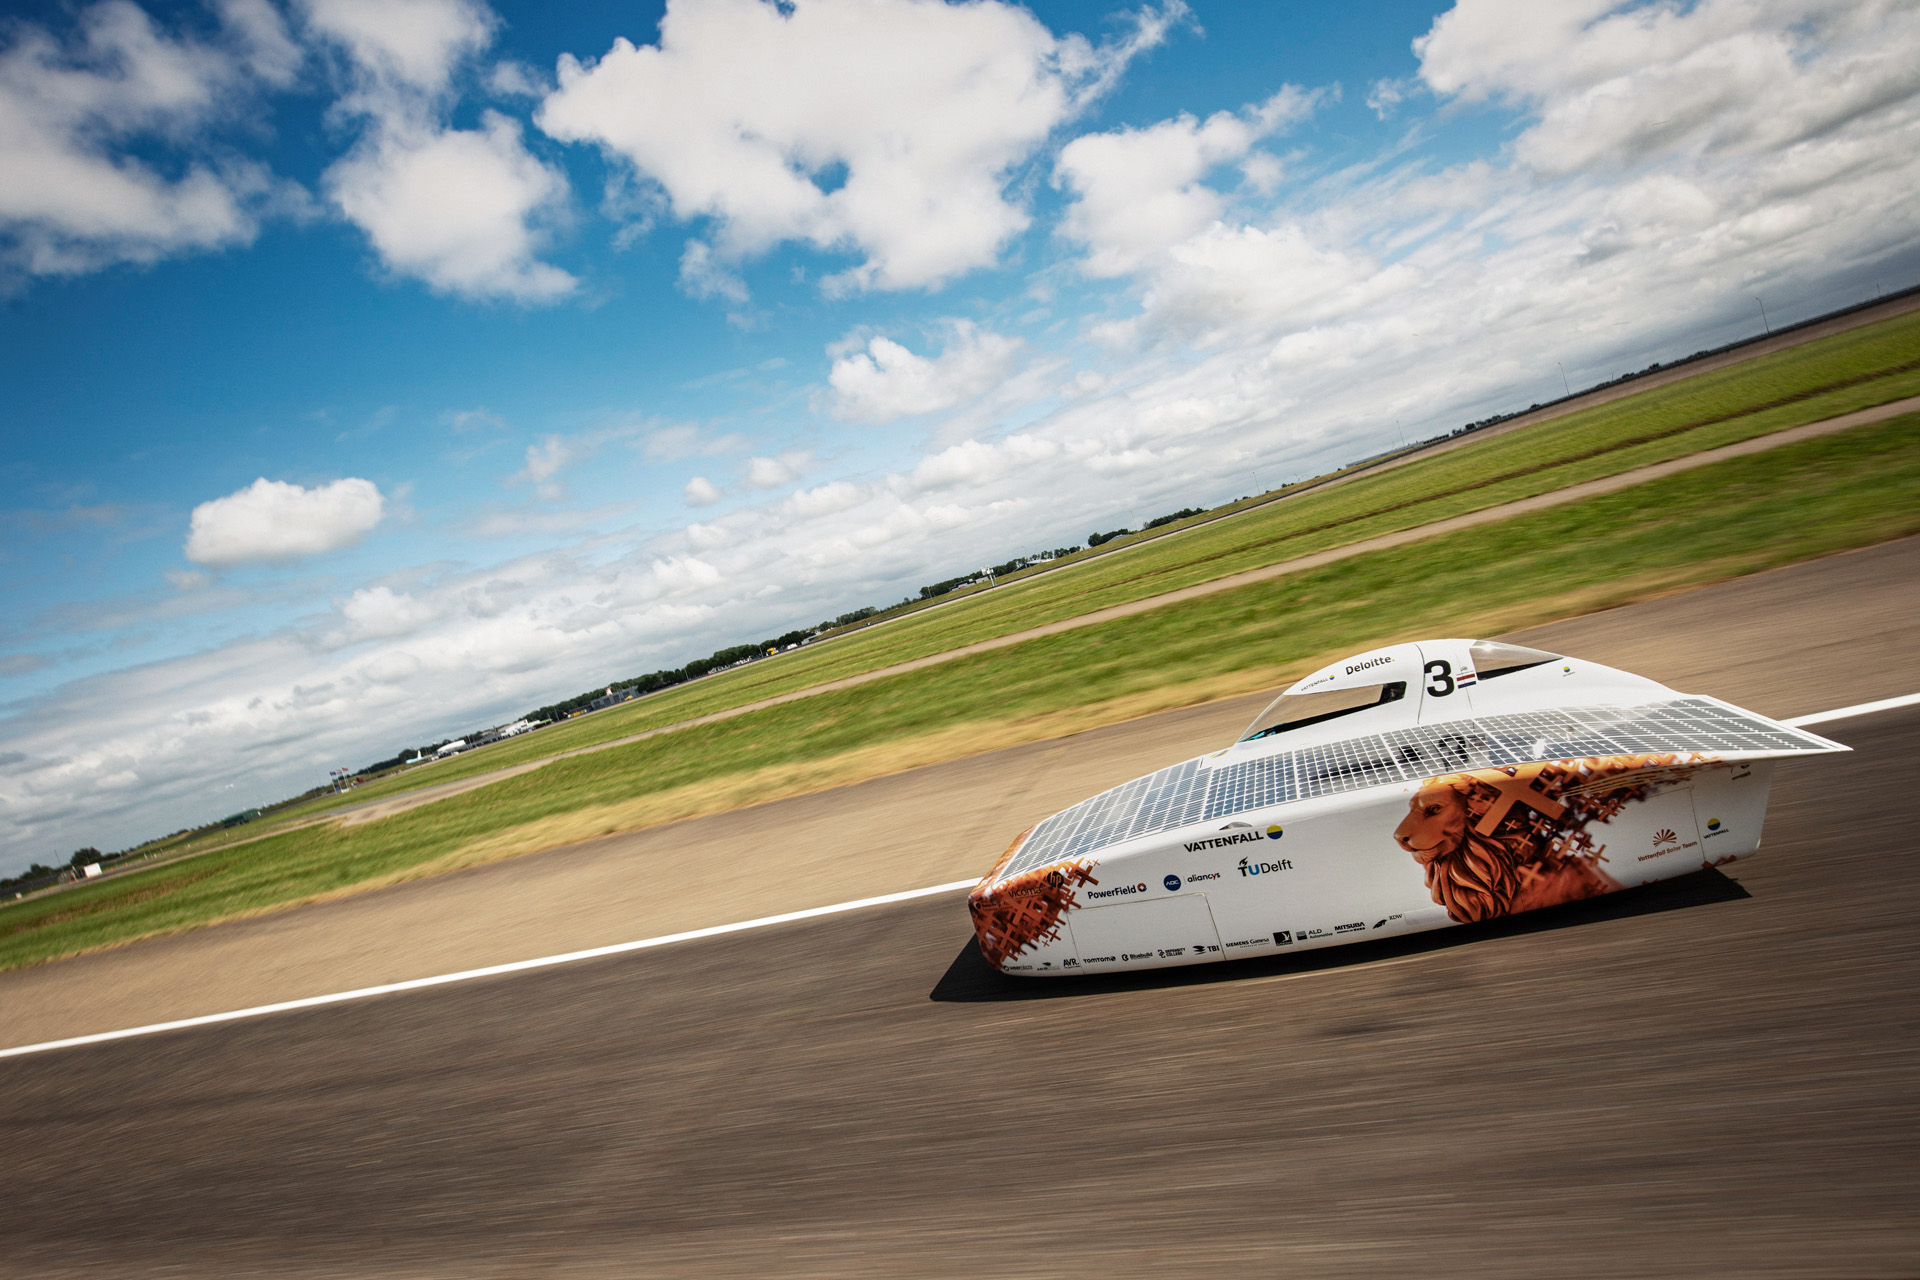 Bionic surface technologies at the Bridgestone World Solar Challenge